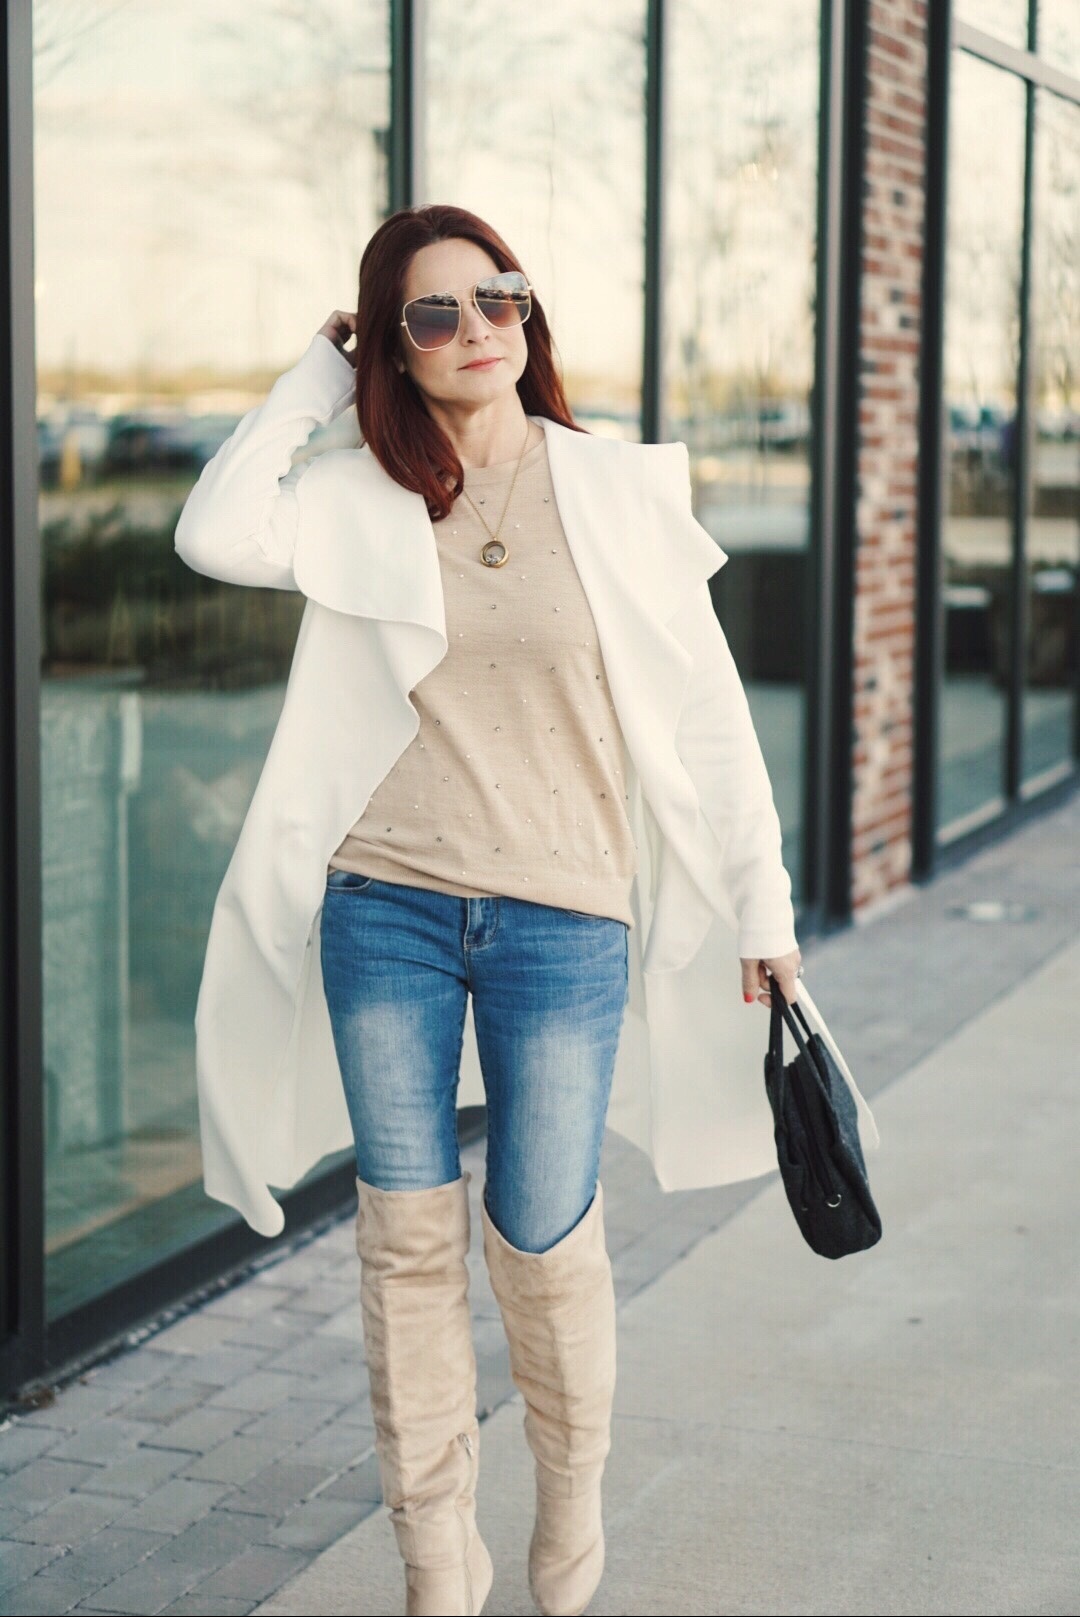 outfit ideas with over the knee boots, cream sweaters, light duster jackets, square sunglasses, boot outfit ideas